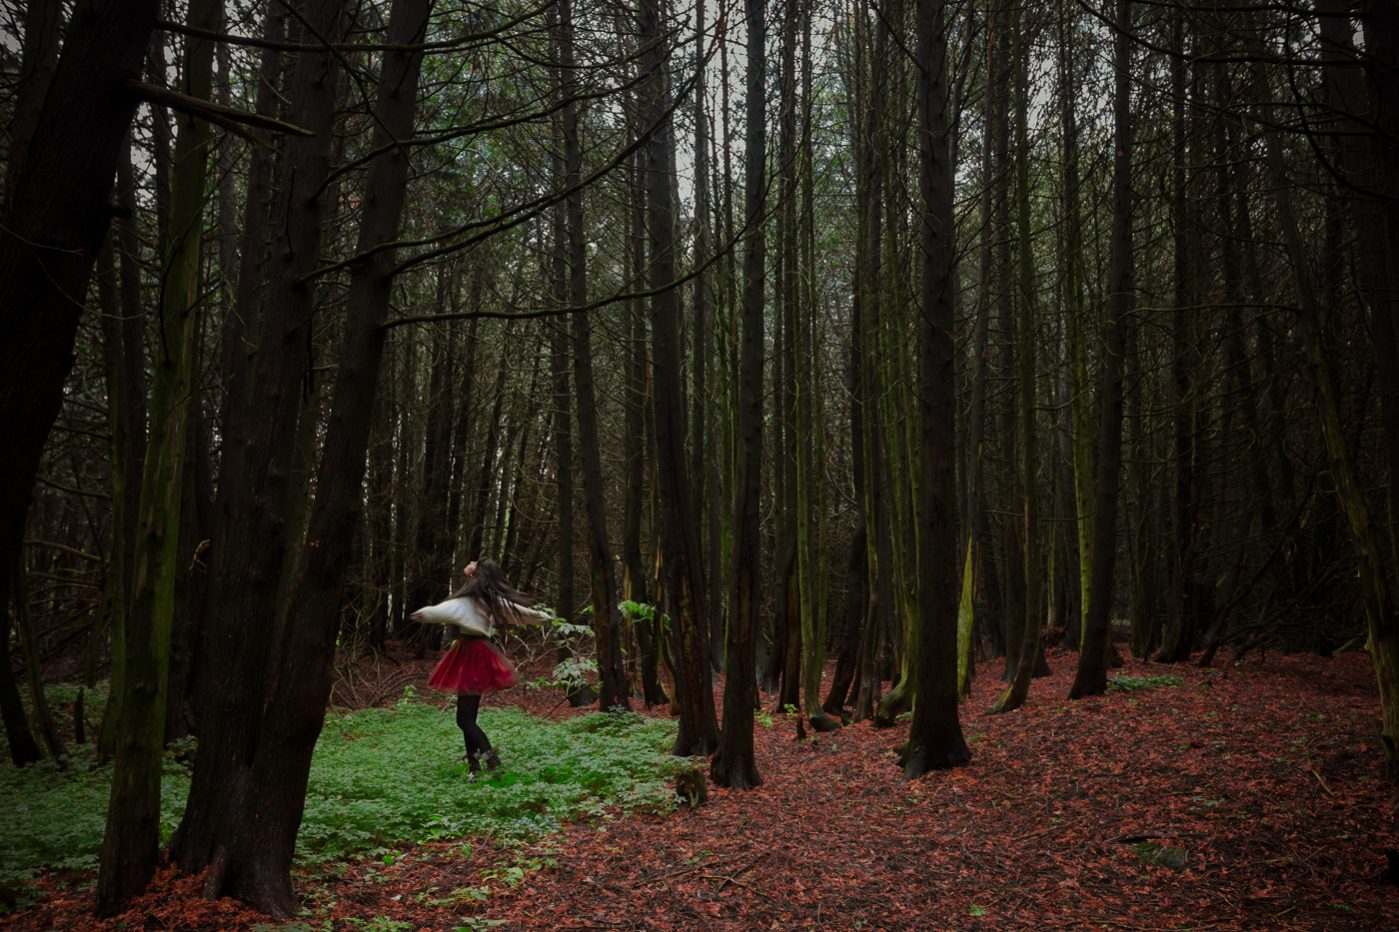 Girl in red skirt spinning amongst tall trees in a forest covered with red mulch.